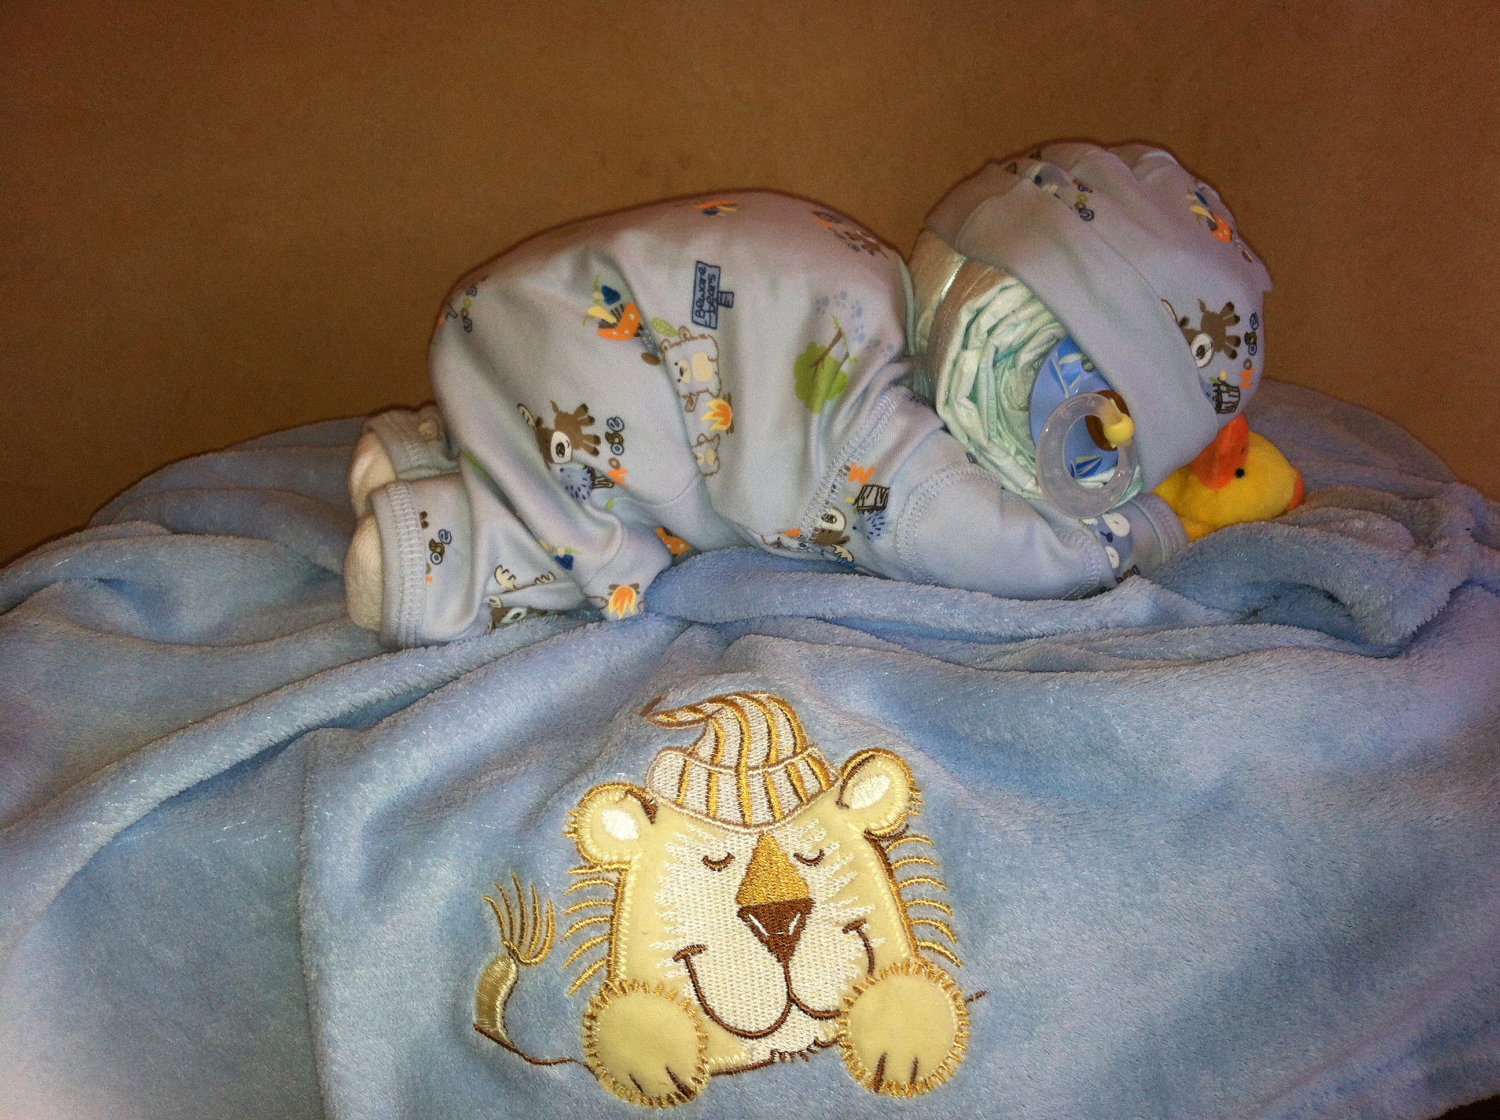 Sleeping Baby Diaper Cakes for Baby Shower